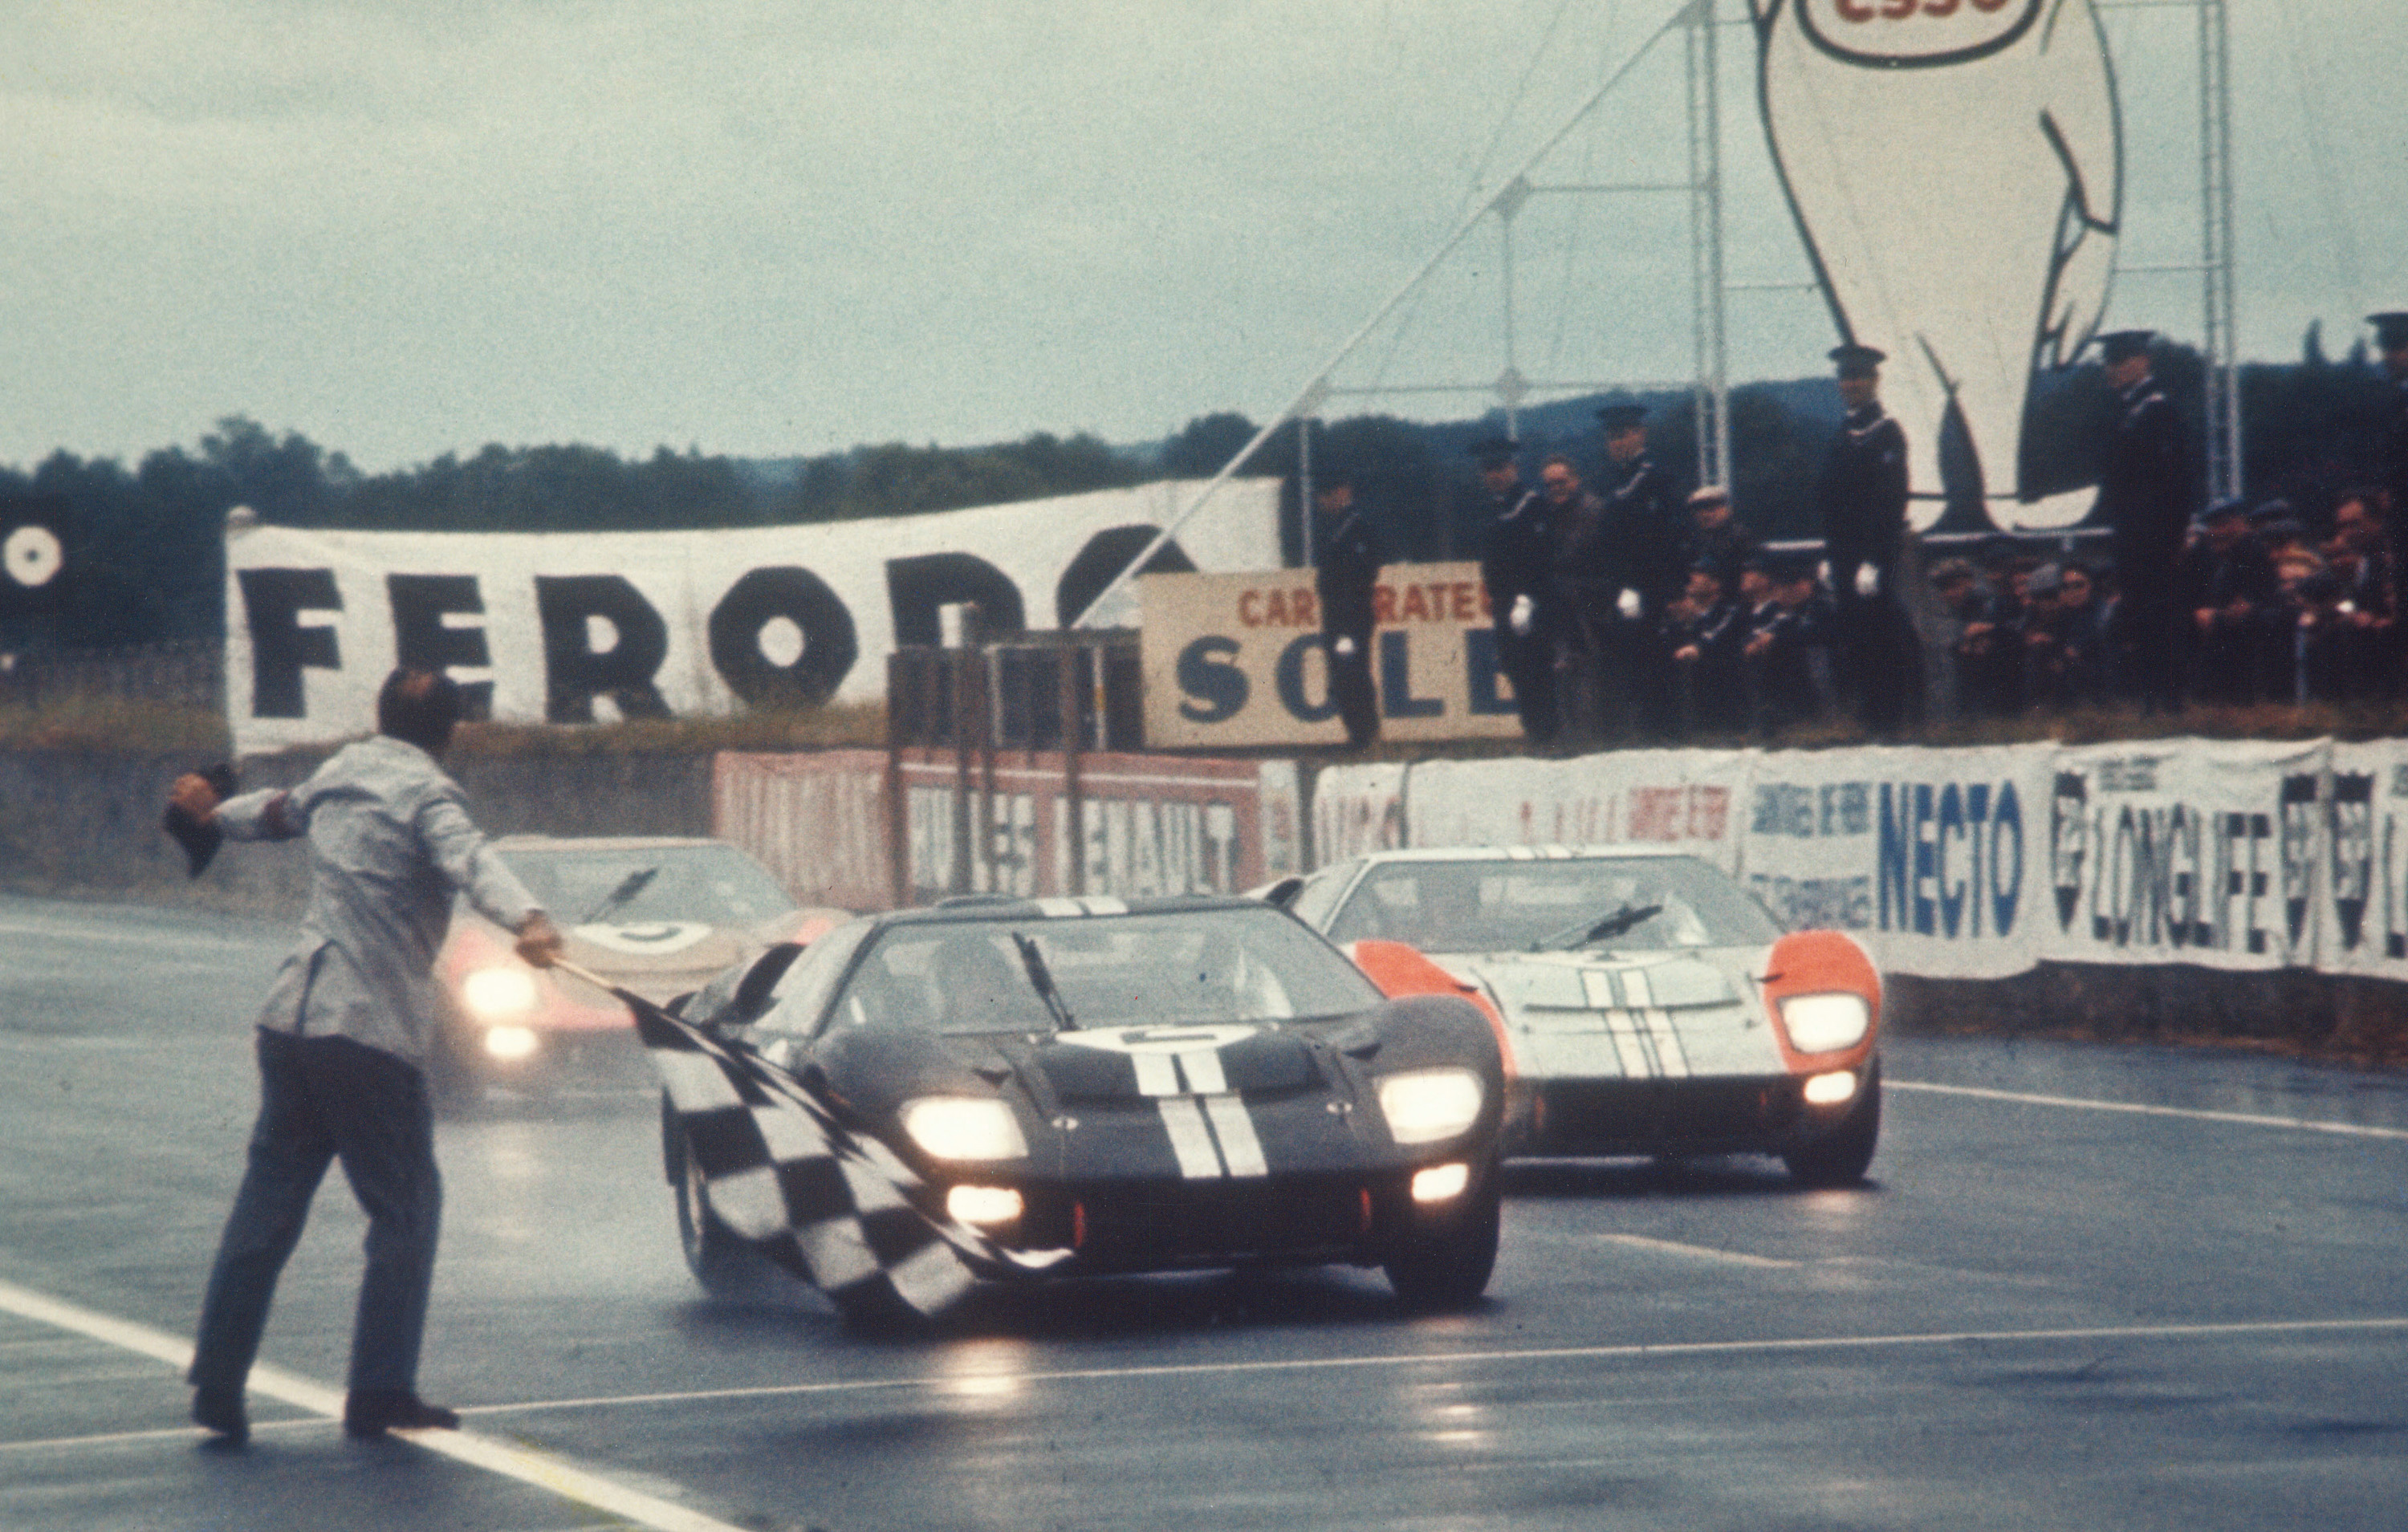 The faltering Ferrari charge allowed Ford it stage this perfectly choreographed finish to the 1966 Le Mans 24 Hours